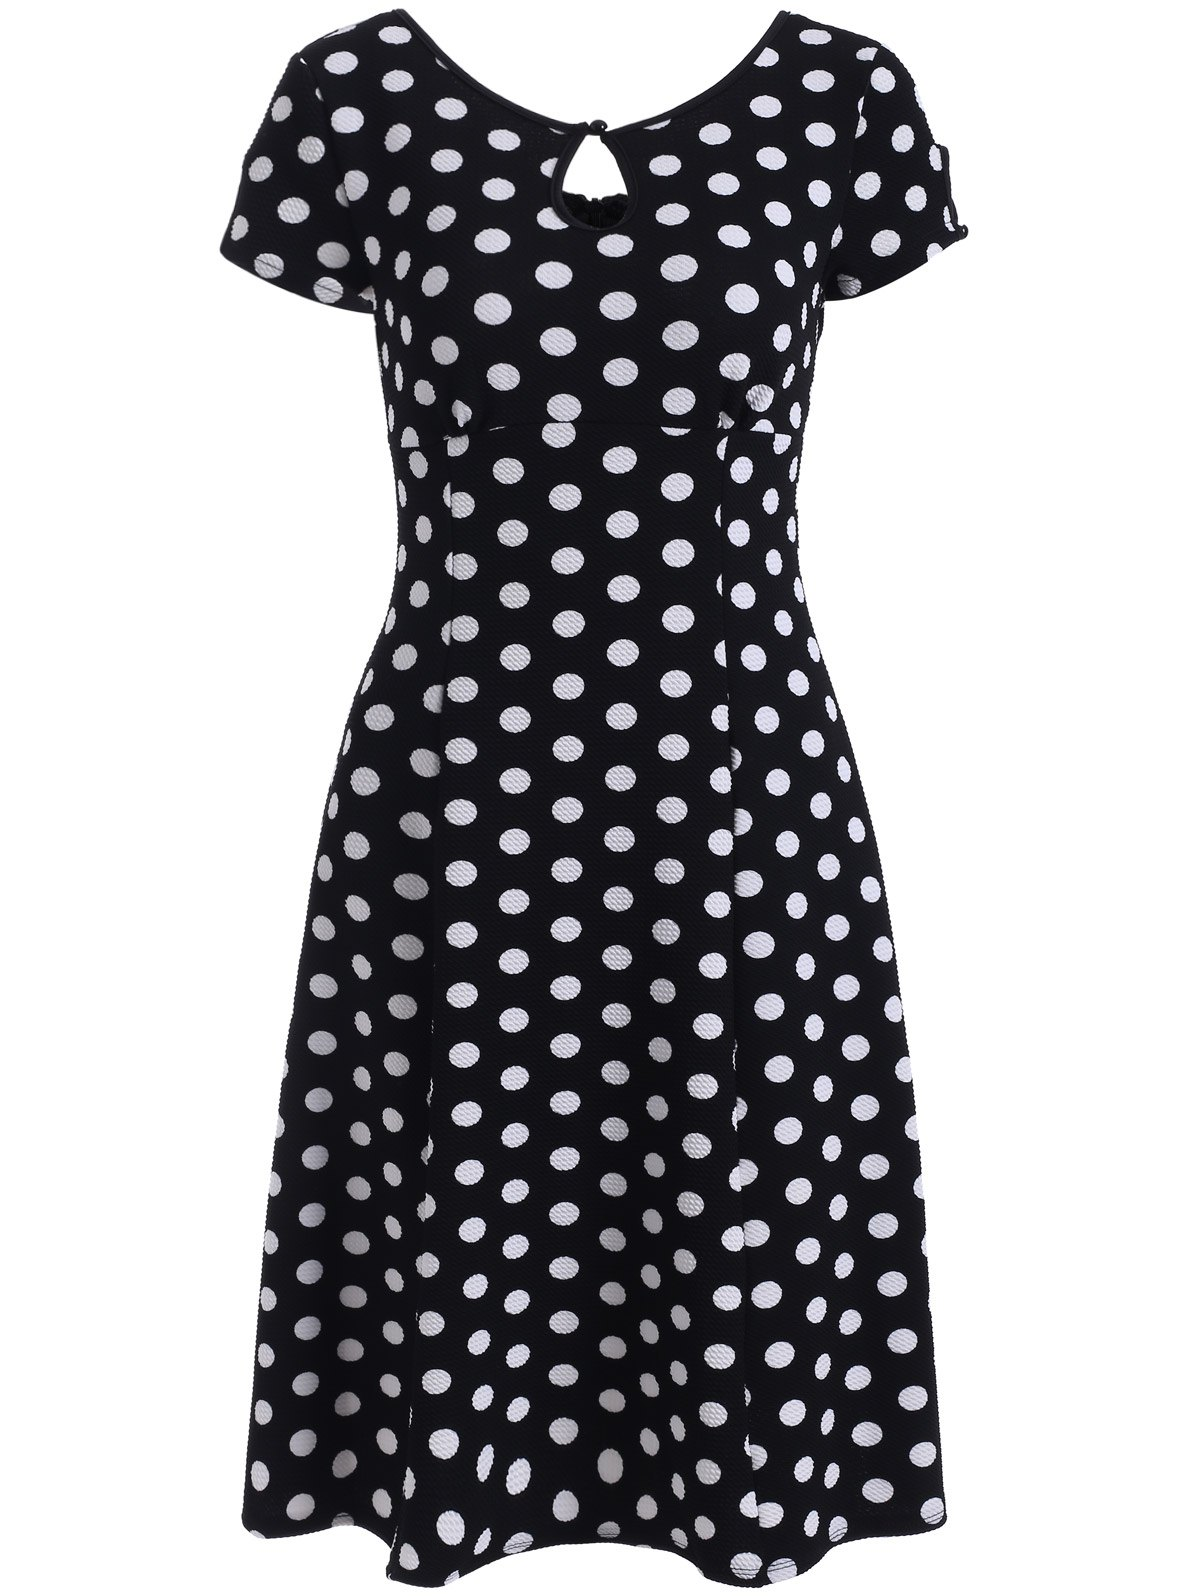 Keyhole Polka Dot Print Short Sleeve A Line Dress - BLACK L